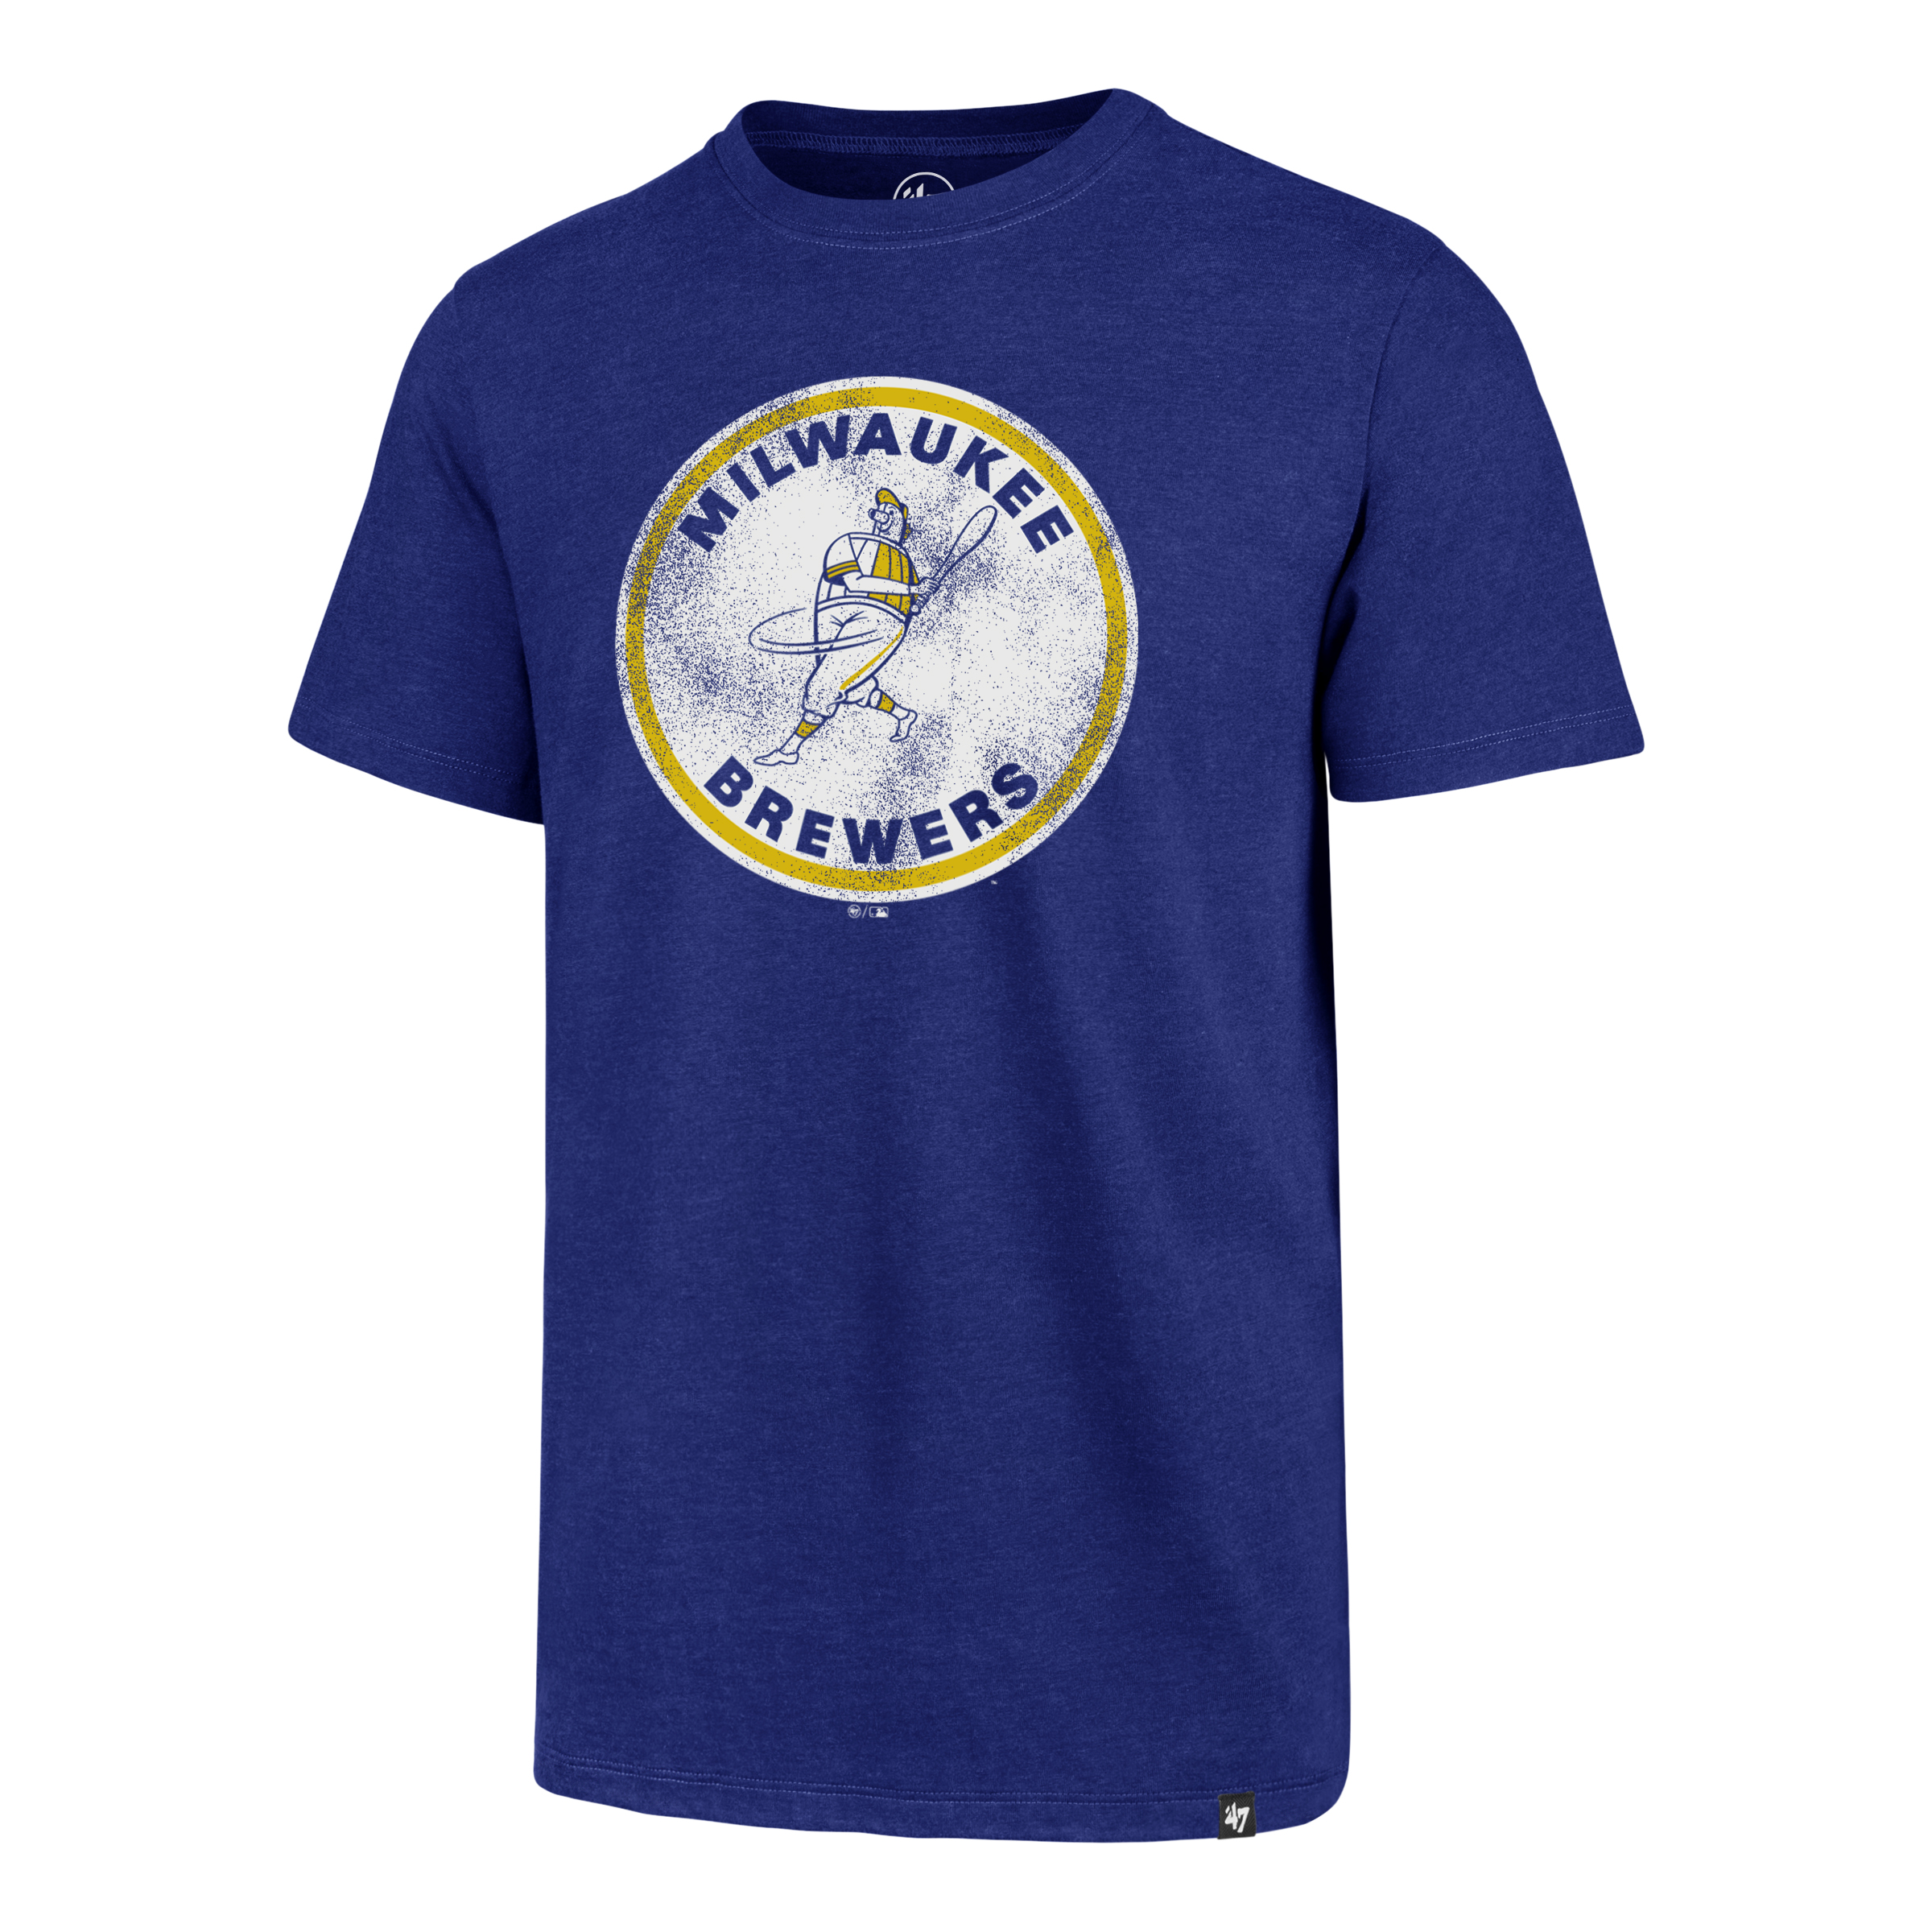 Brewers Throwback Clb Tee, Royal Bl,Sapphire,Marine, swatch